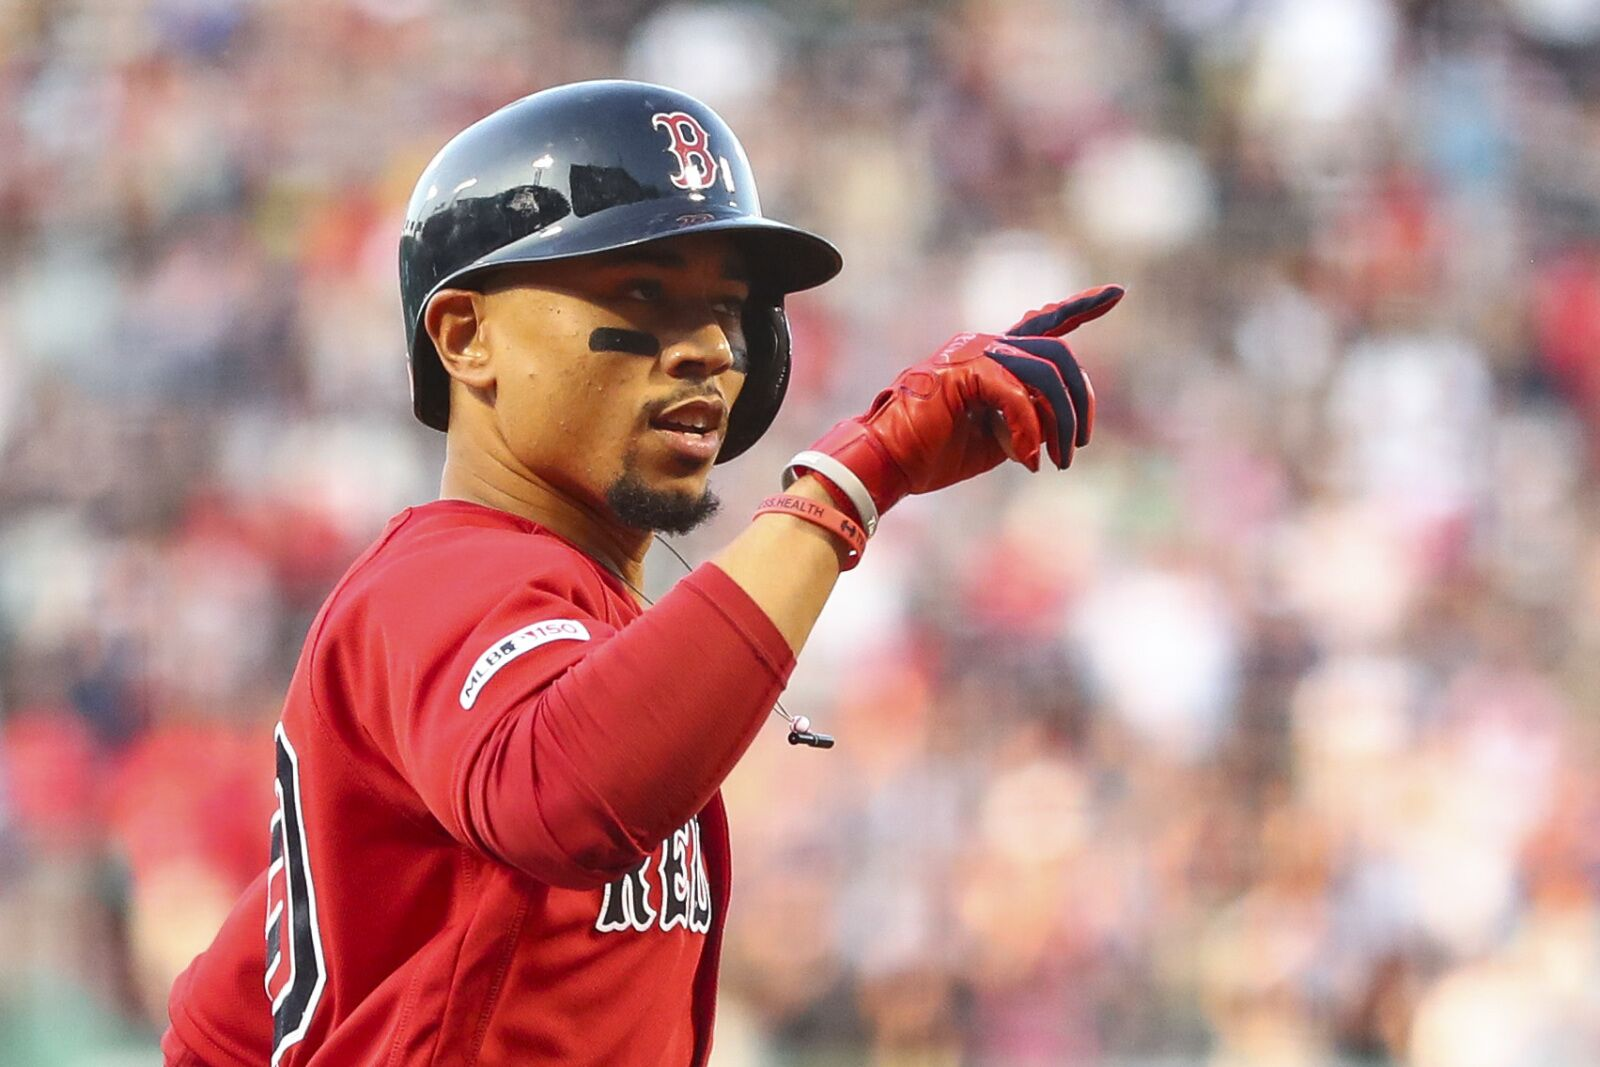 Red Sox: It's time for Boston to pull the trigger on trading Mookie Betts